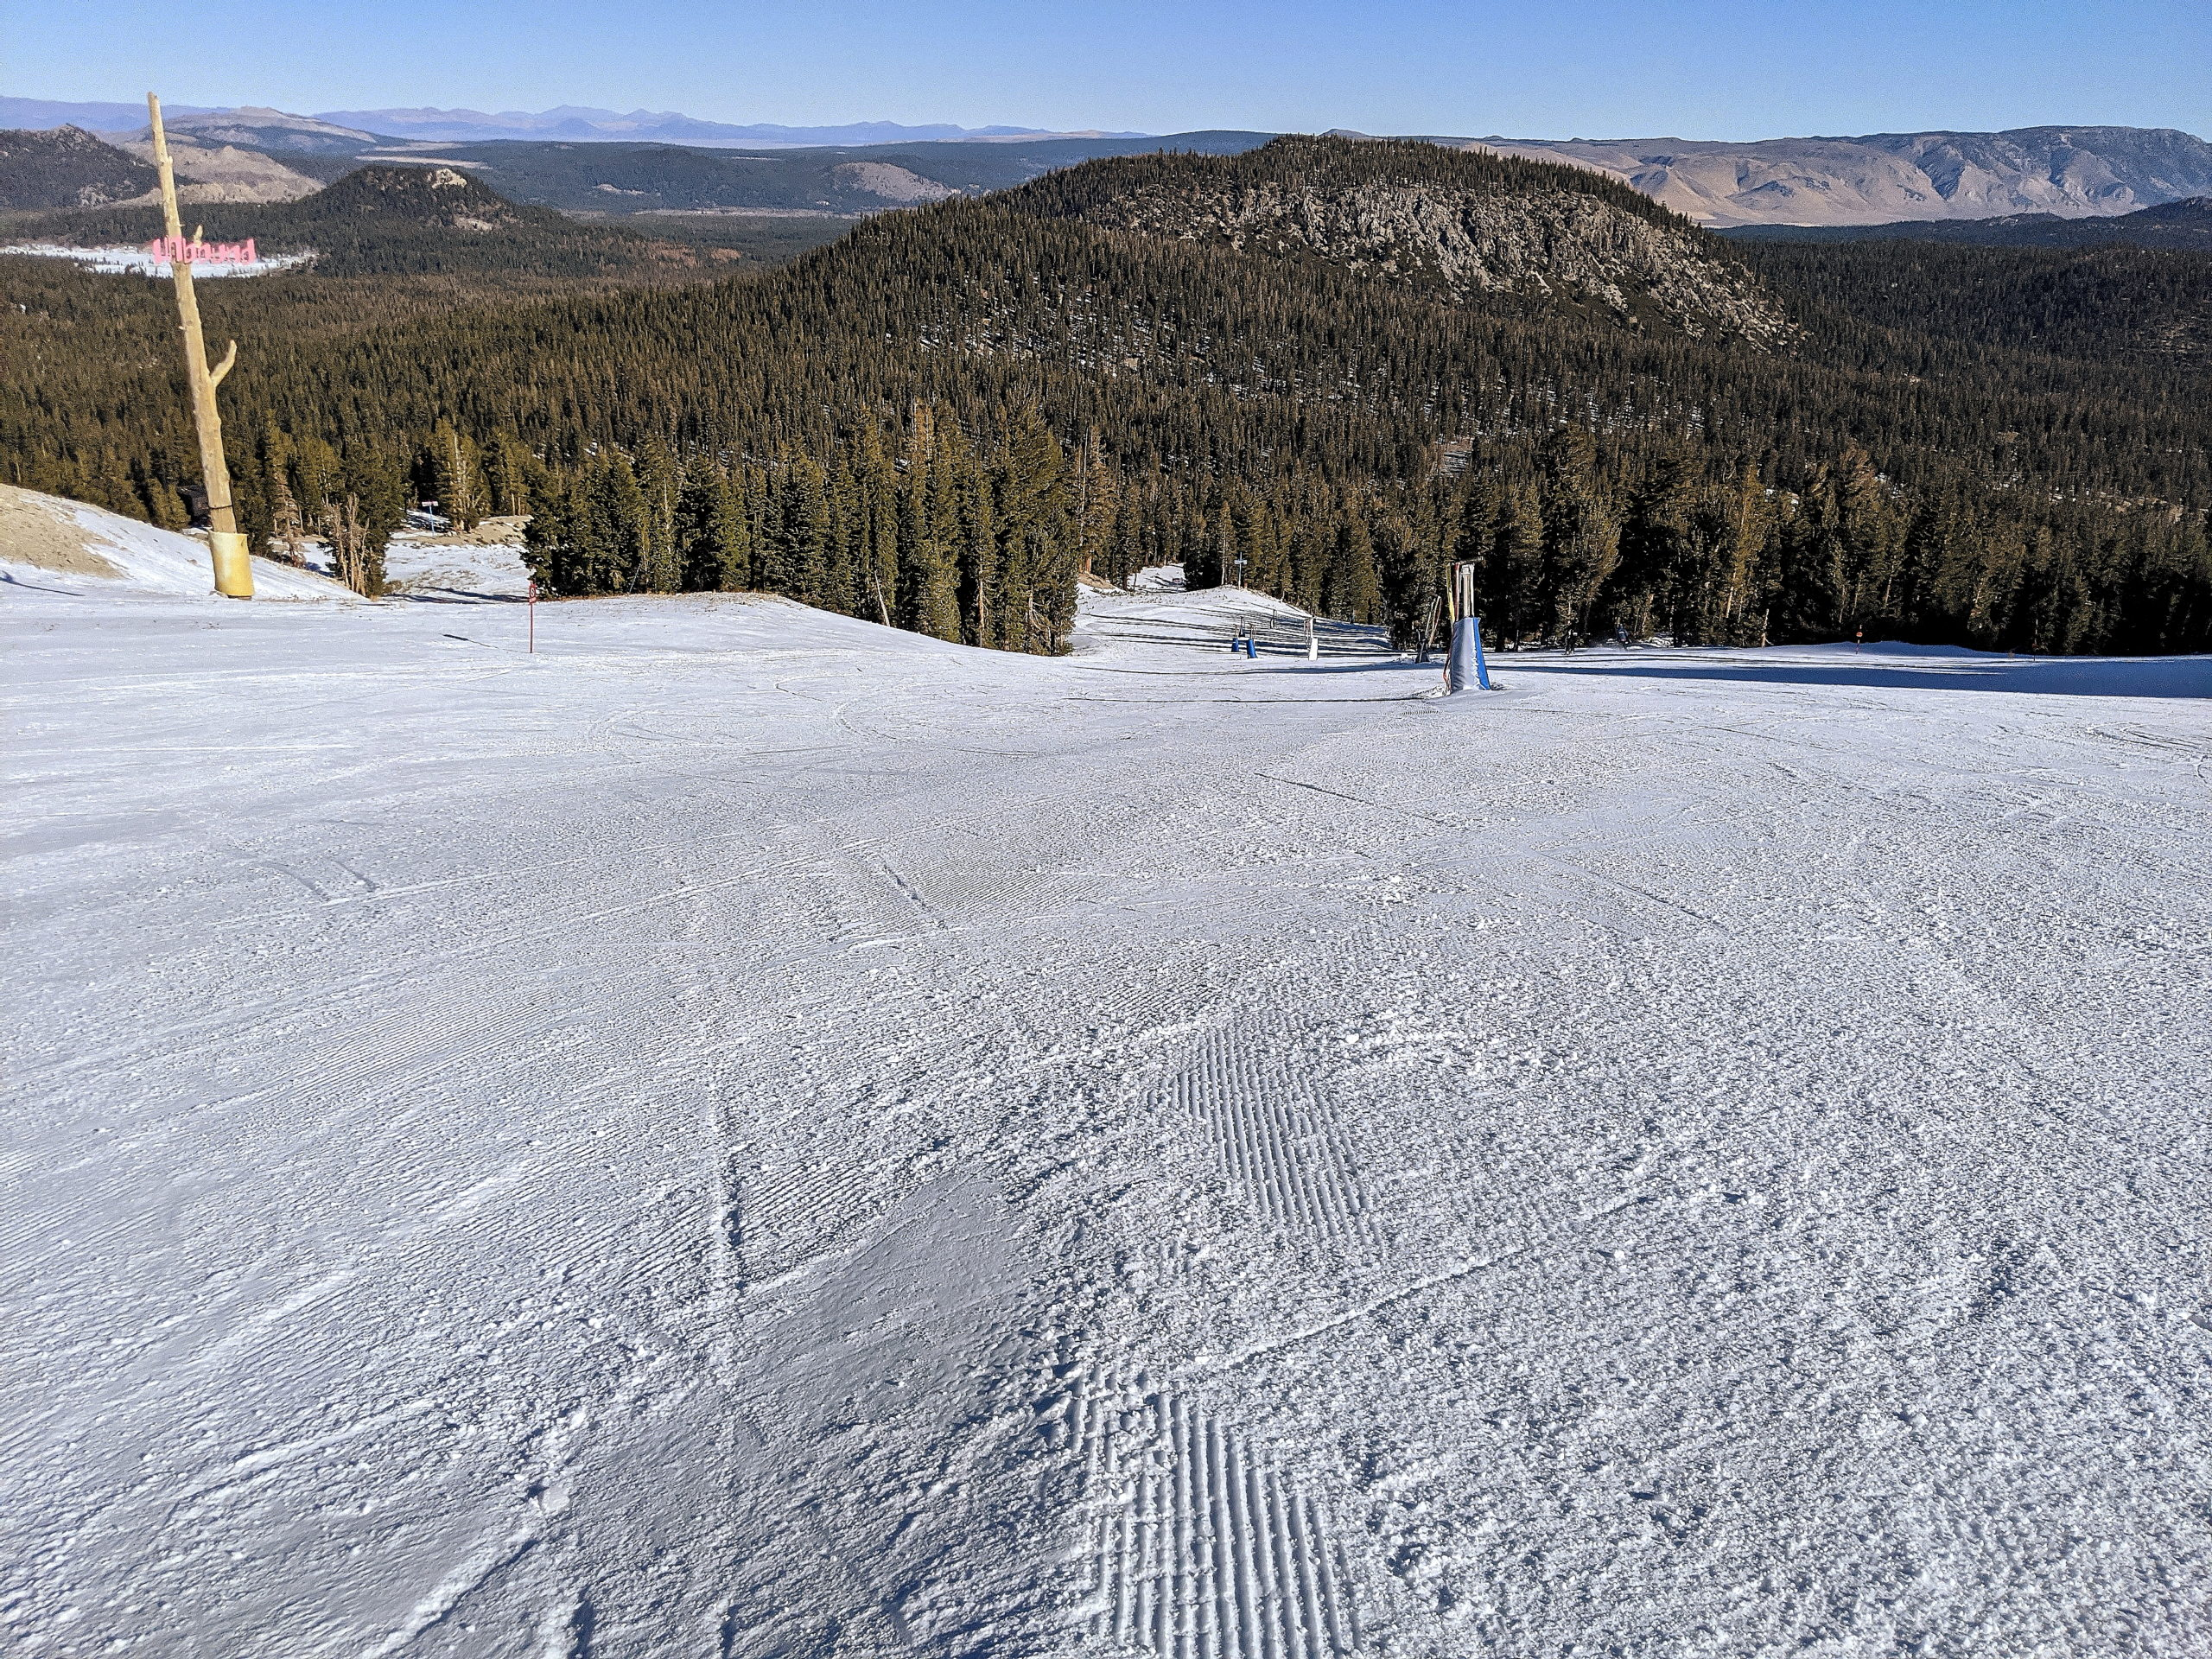 Upper Roller Coaster at Chair 4 - 11-30-2020